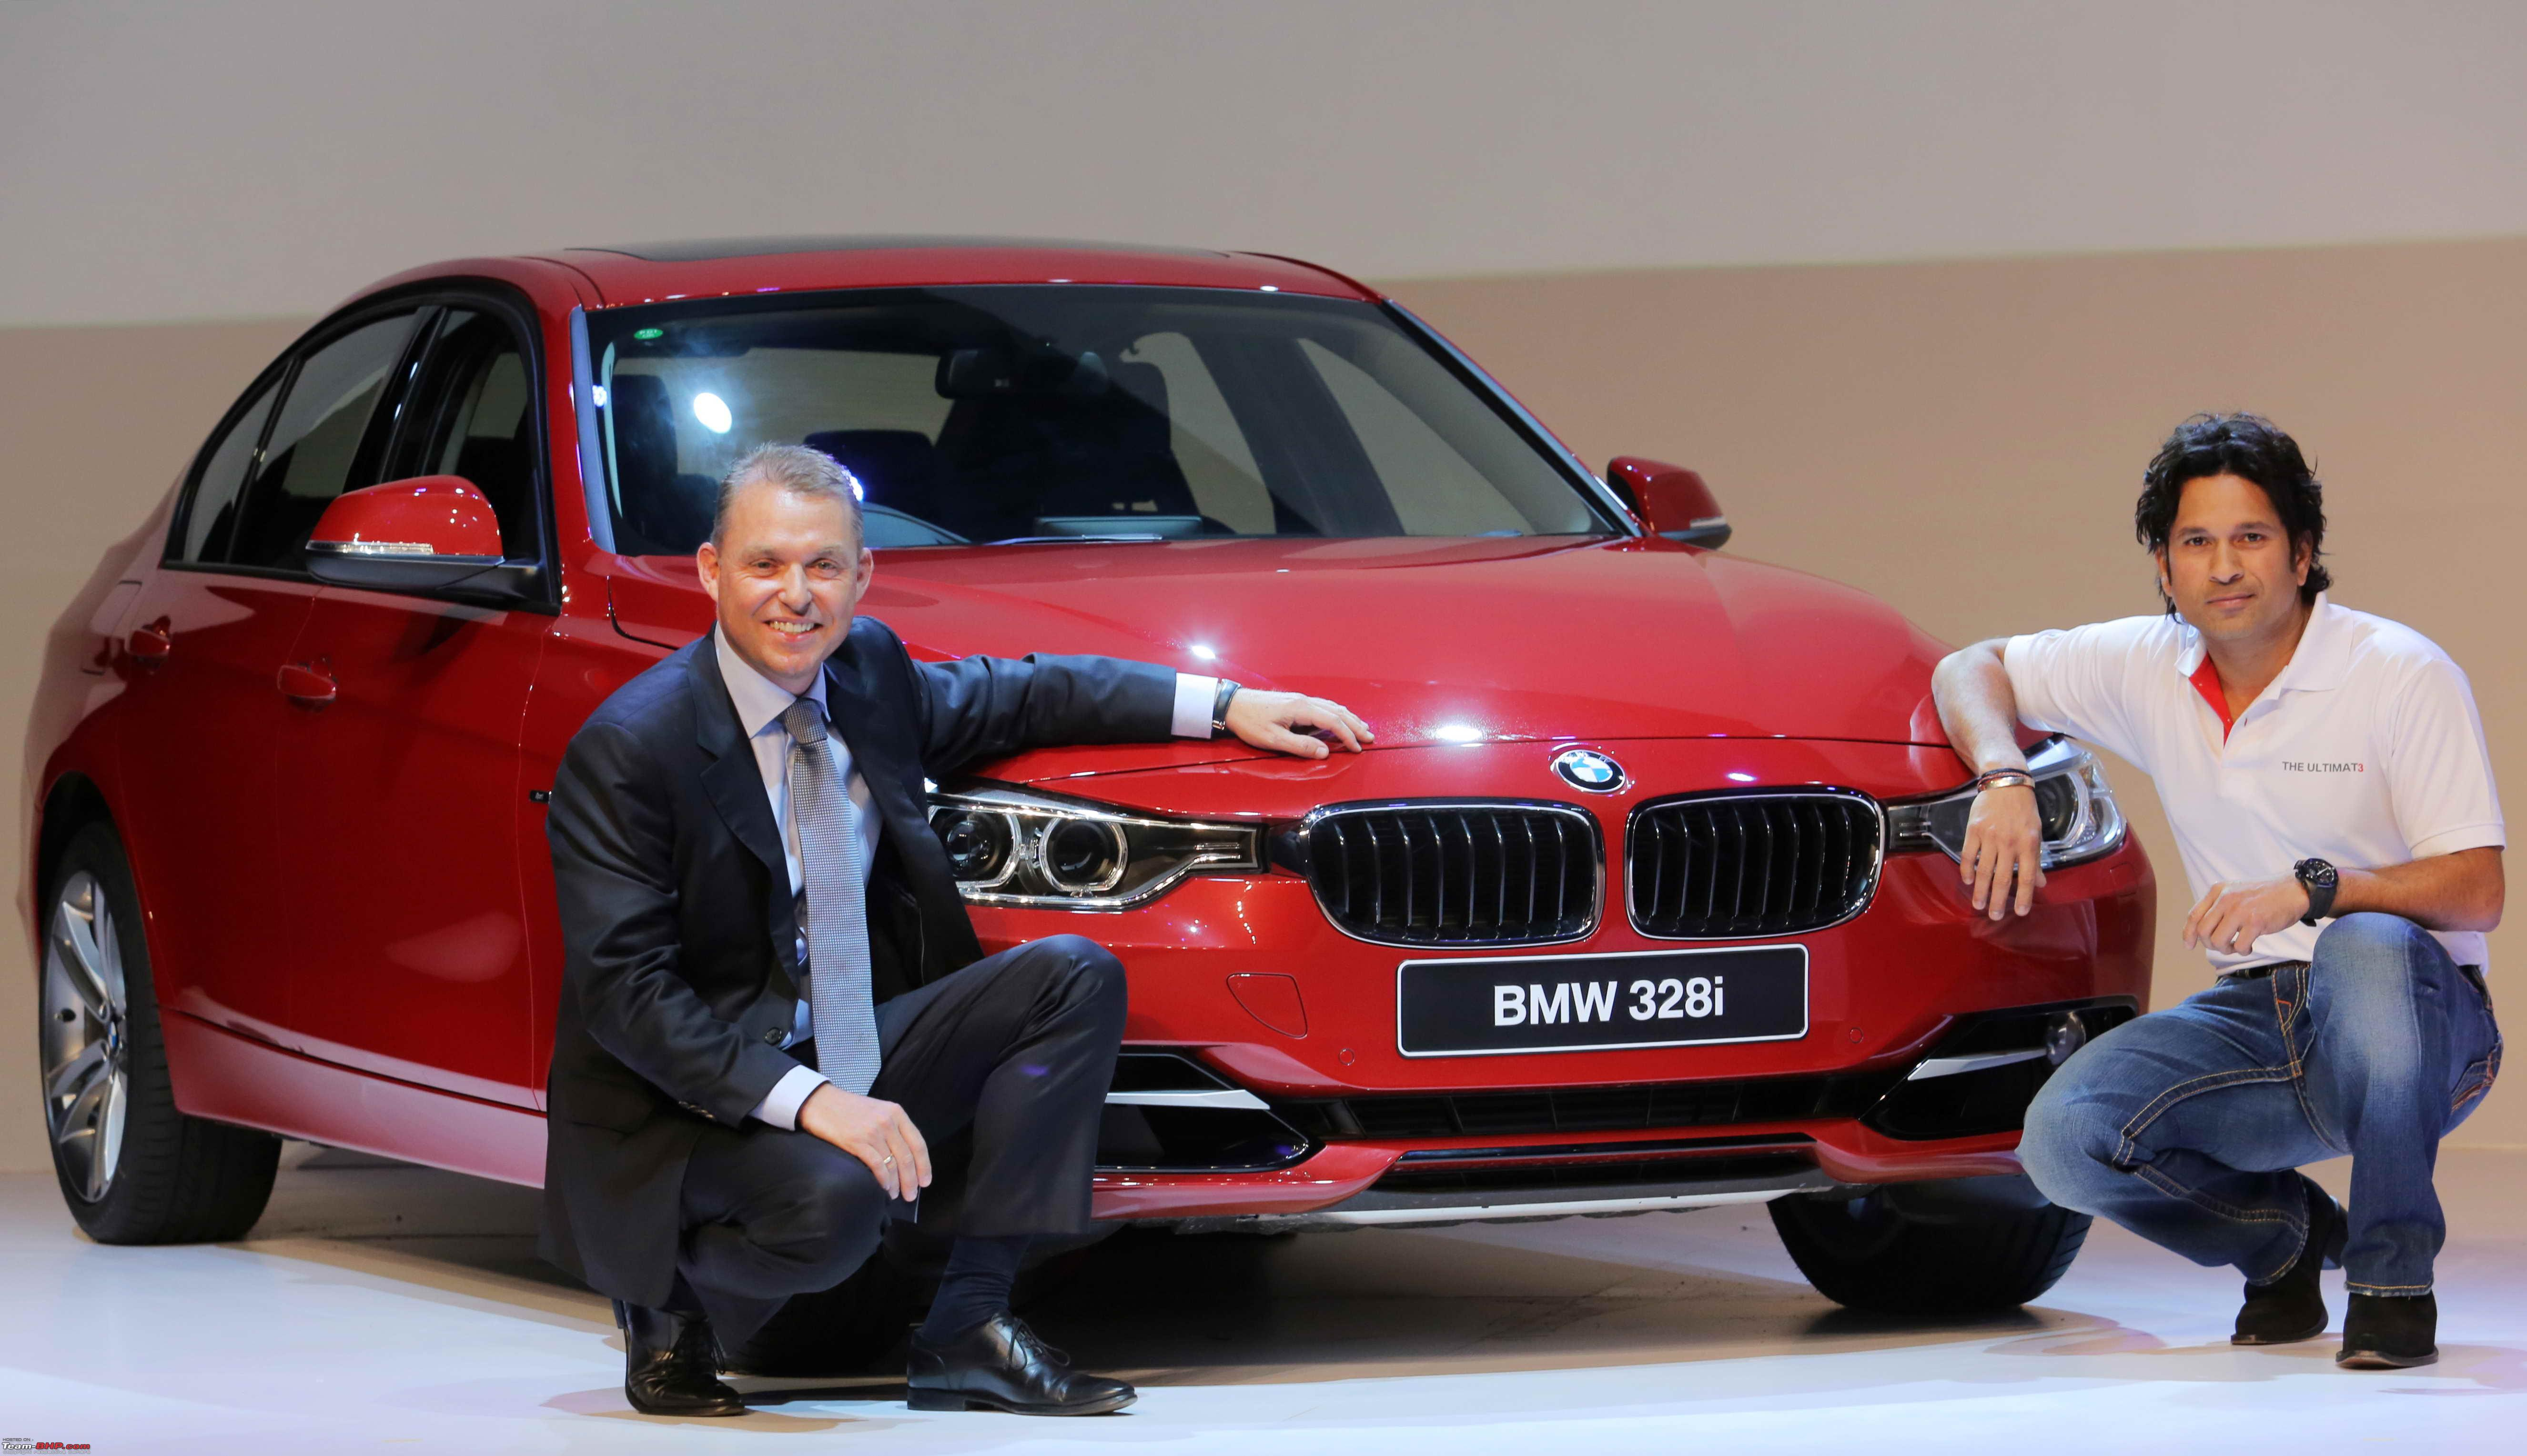 Car models com 2012 bmw 3 series - 2012 Bmw 3 Series Official Launch Report Sachin Tendulkar Dr